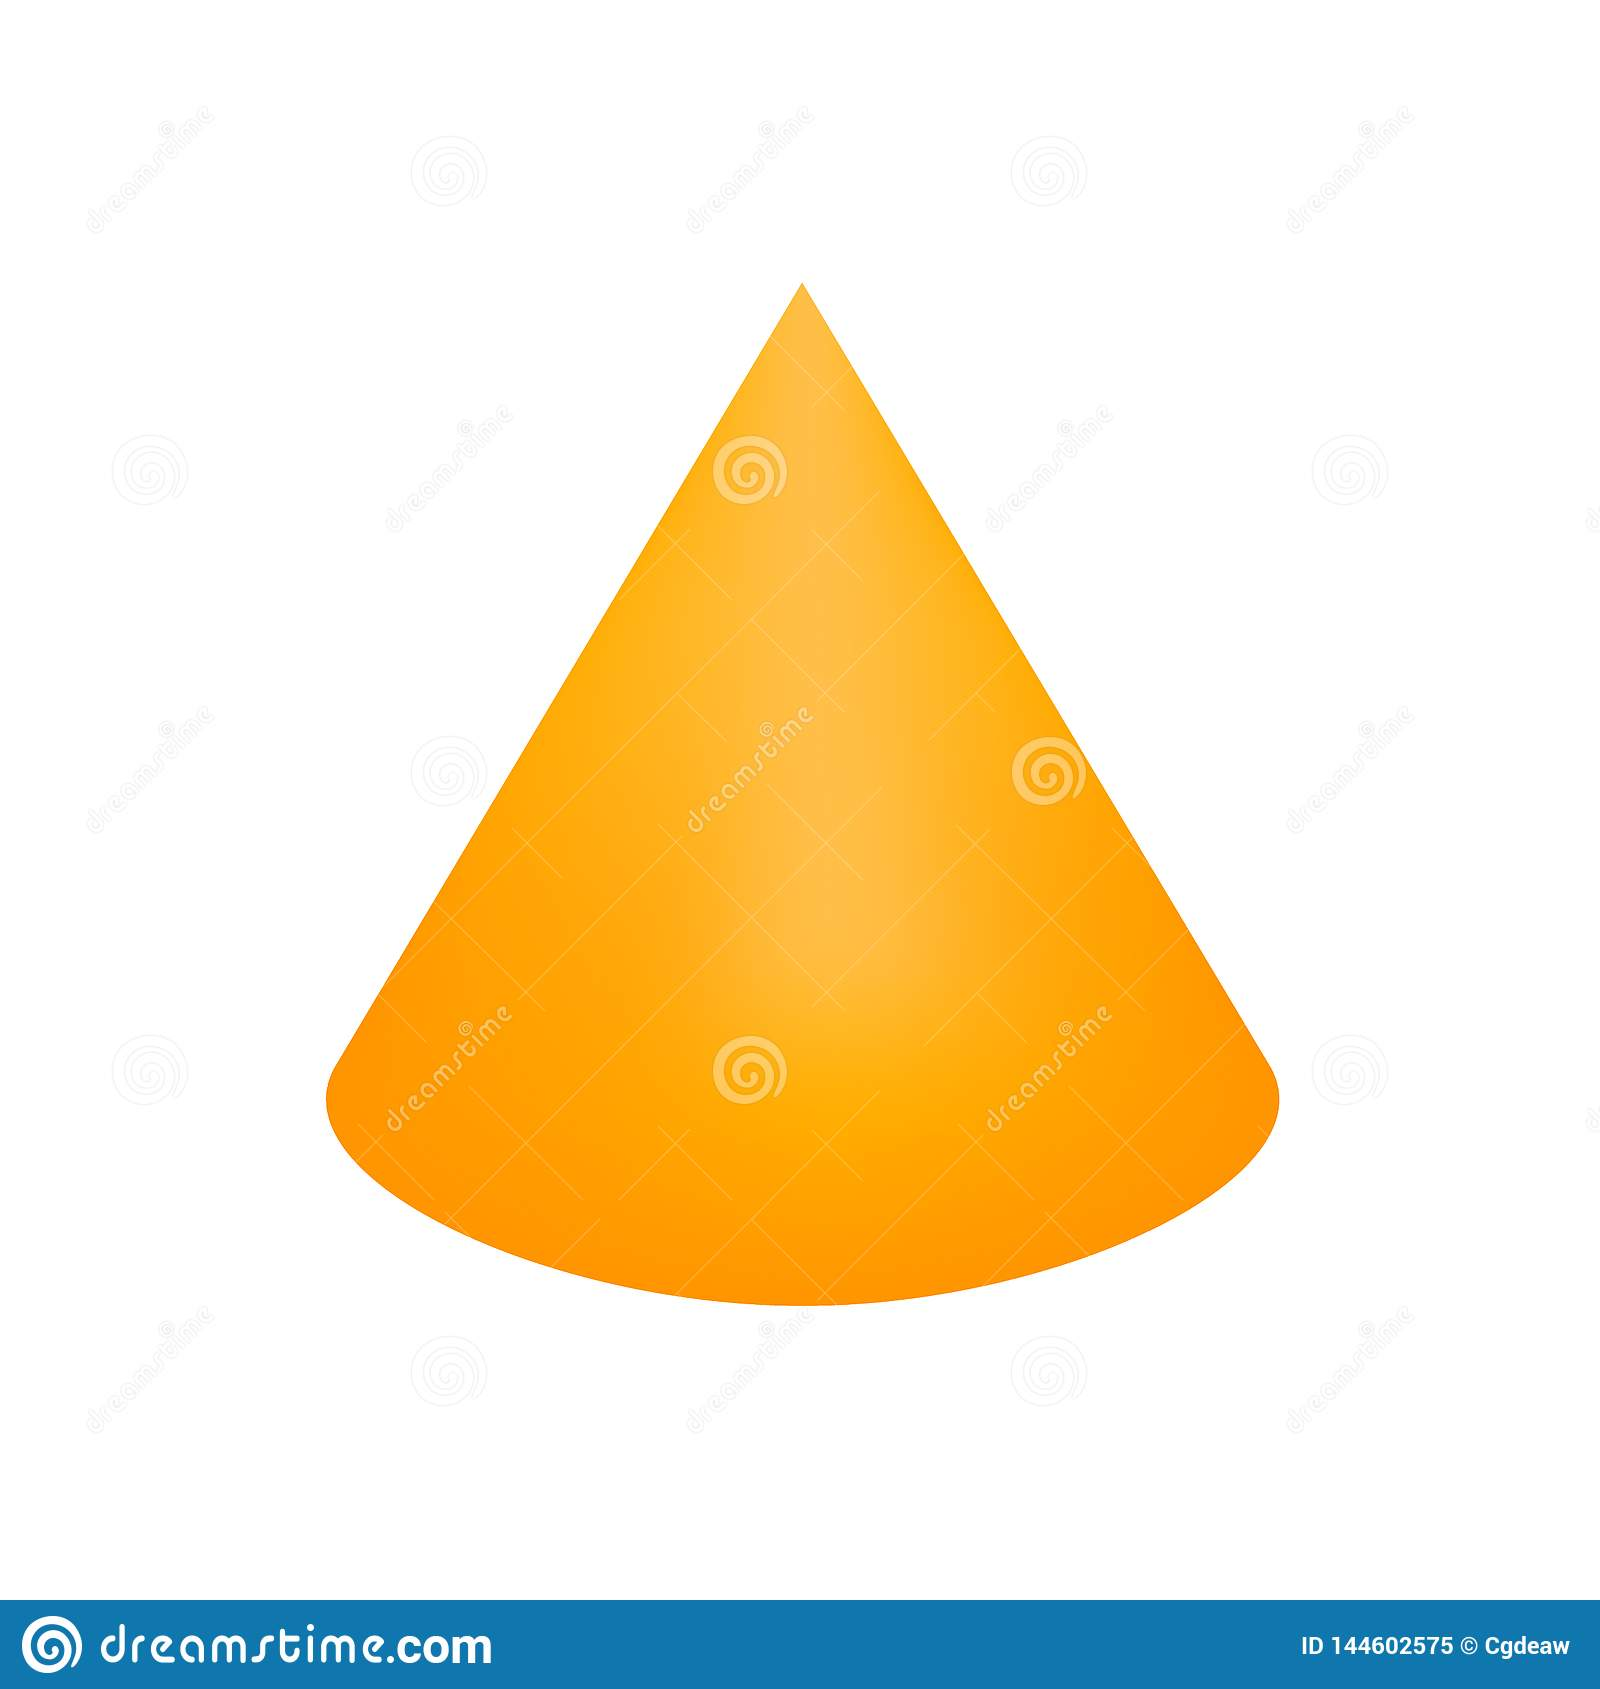 Orange Cone Basic Simple 3d Shapes Isolated On White Background Geometric Cone Icon 3d Shape Symbol Cone Clip Art Geometric Stock Vector Illustration Of Basic Flat 144602575